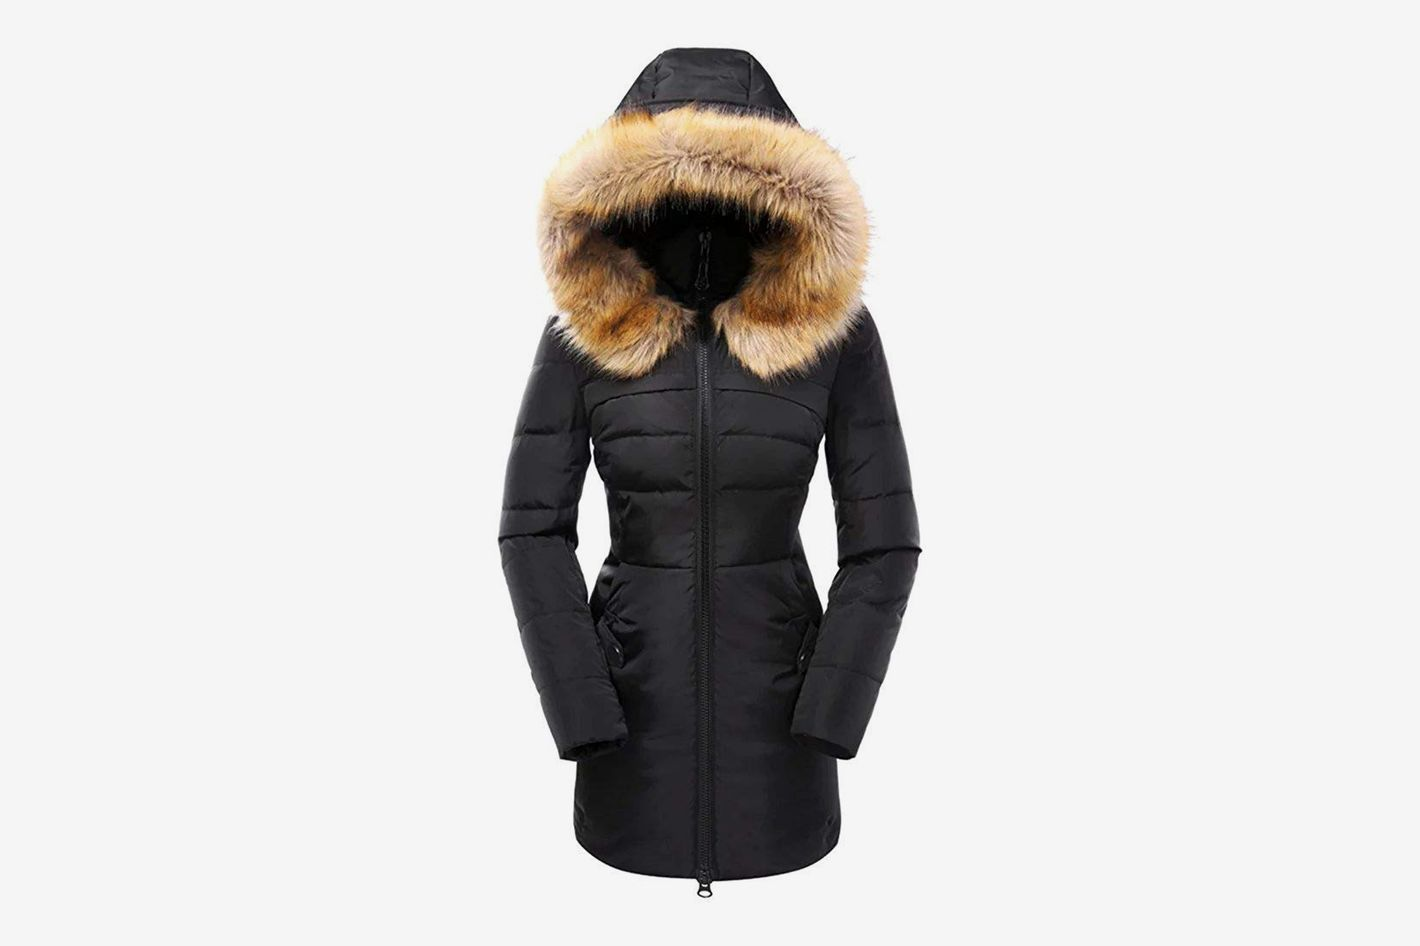 5161845cf50 Beinia Valuker Women s Down Coat with Fur Hood